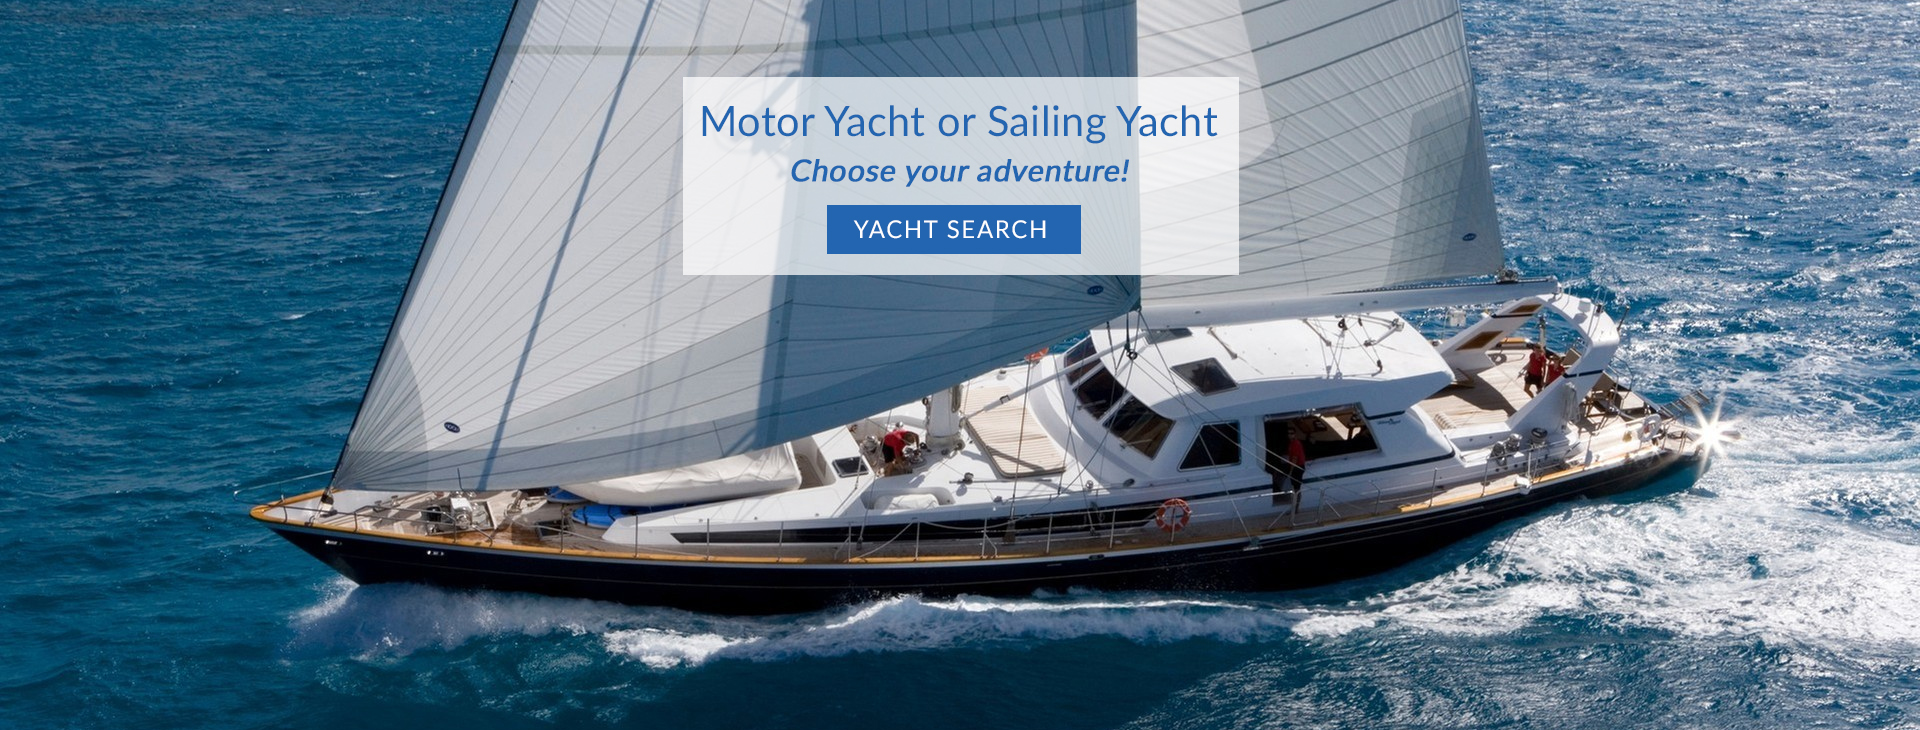 Sailing Yacht MARAE with yacht search banner a text Choose your adventure